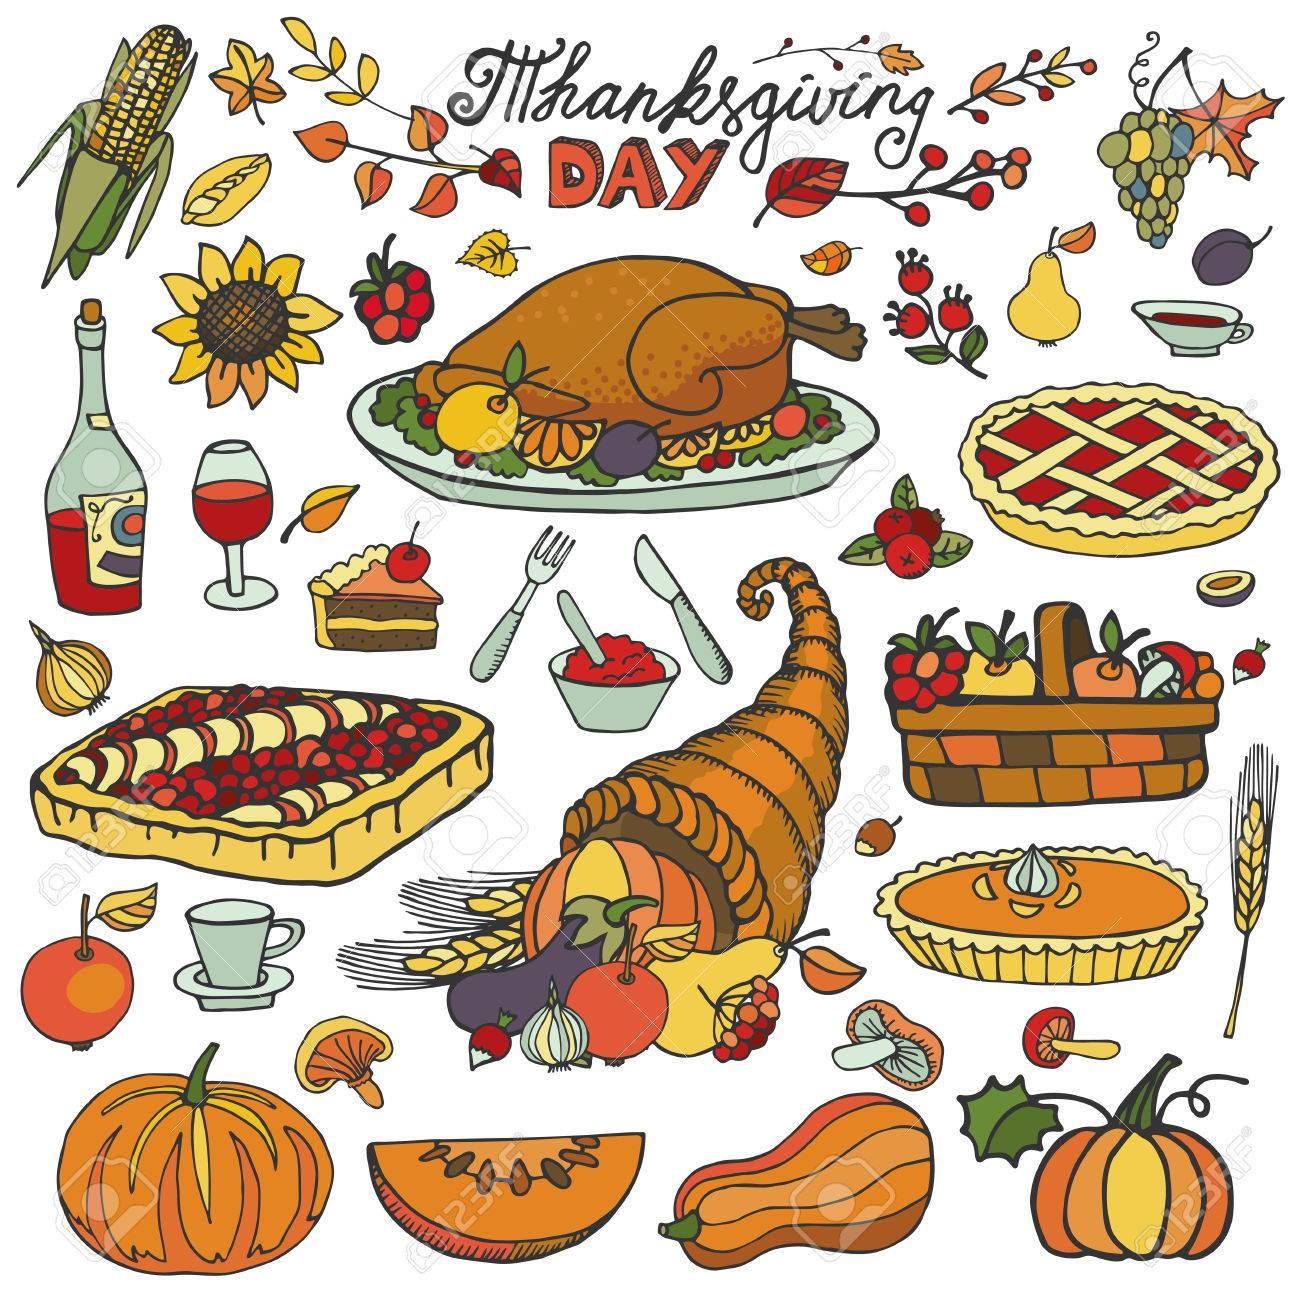 Thanksgiving Day Icons Doodle Food Set Autumn Harvest Decor Elements Hand Royalty Free Cliparts Vectors And Stock Illustration Image 48108796